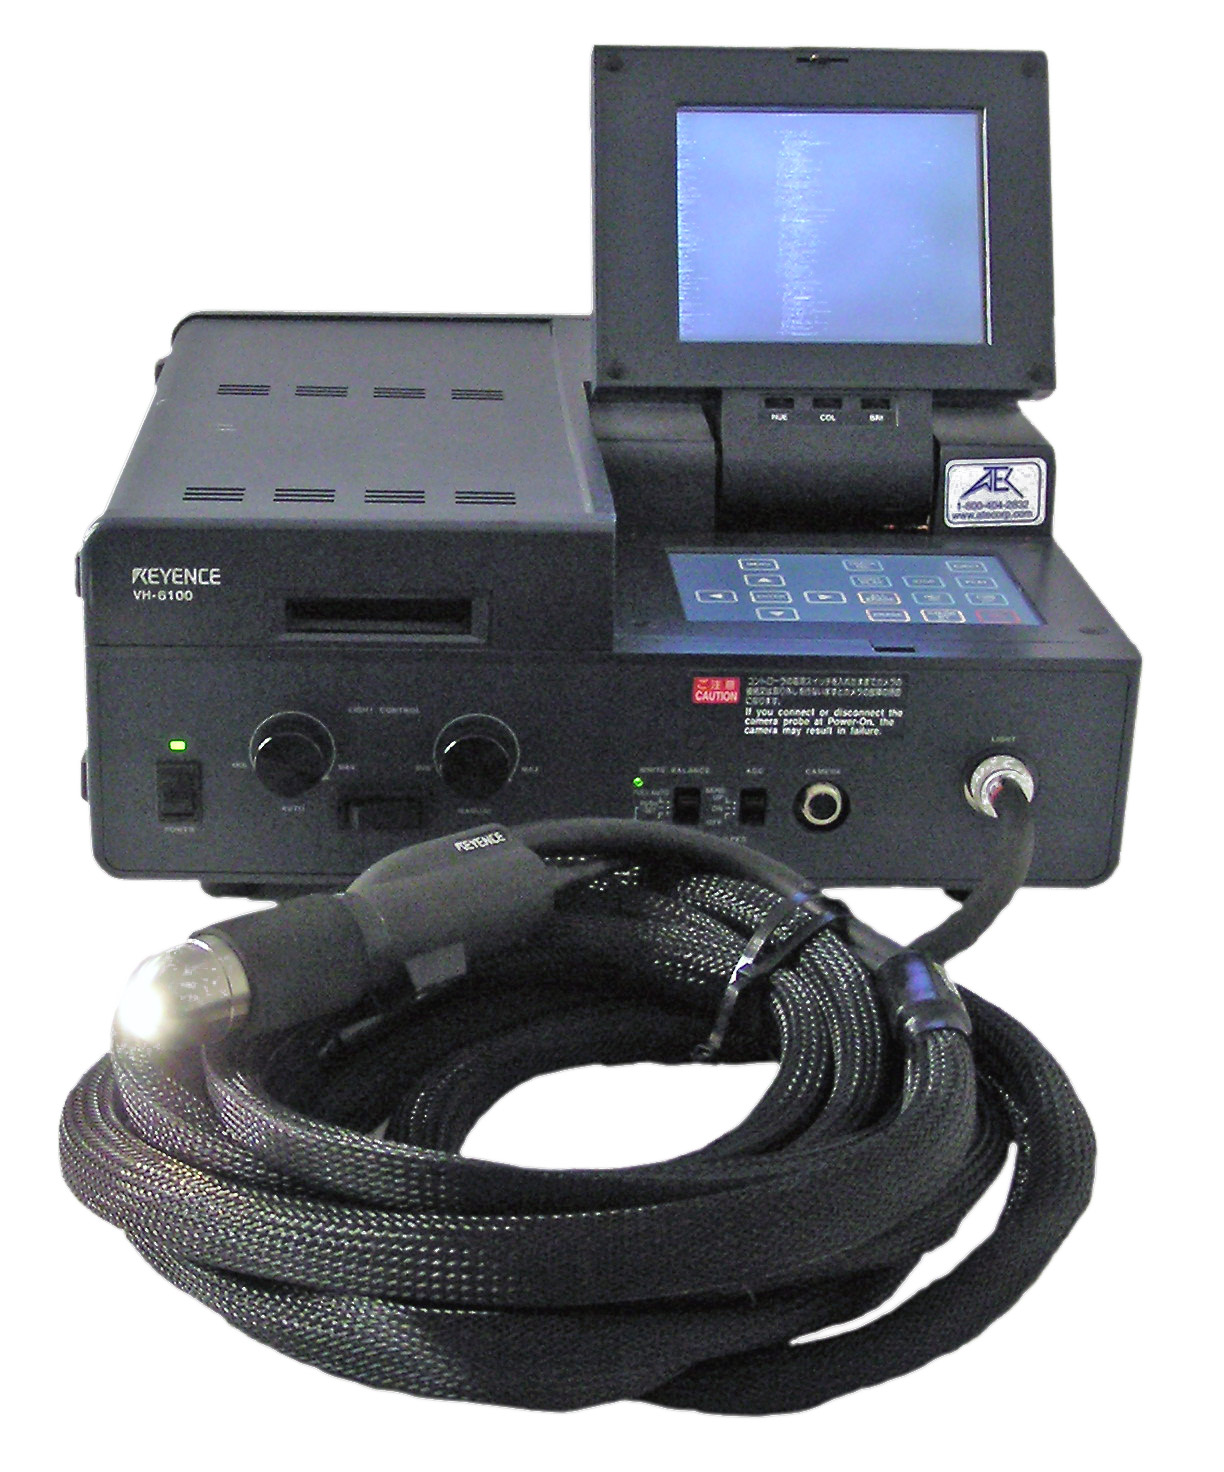 Keyence VH-6100 Digital Microscope with a Built-In Monitor